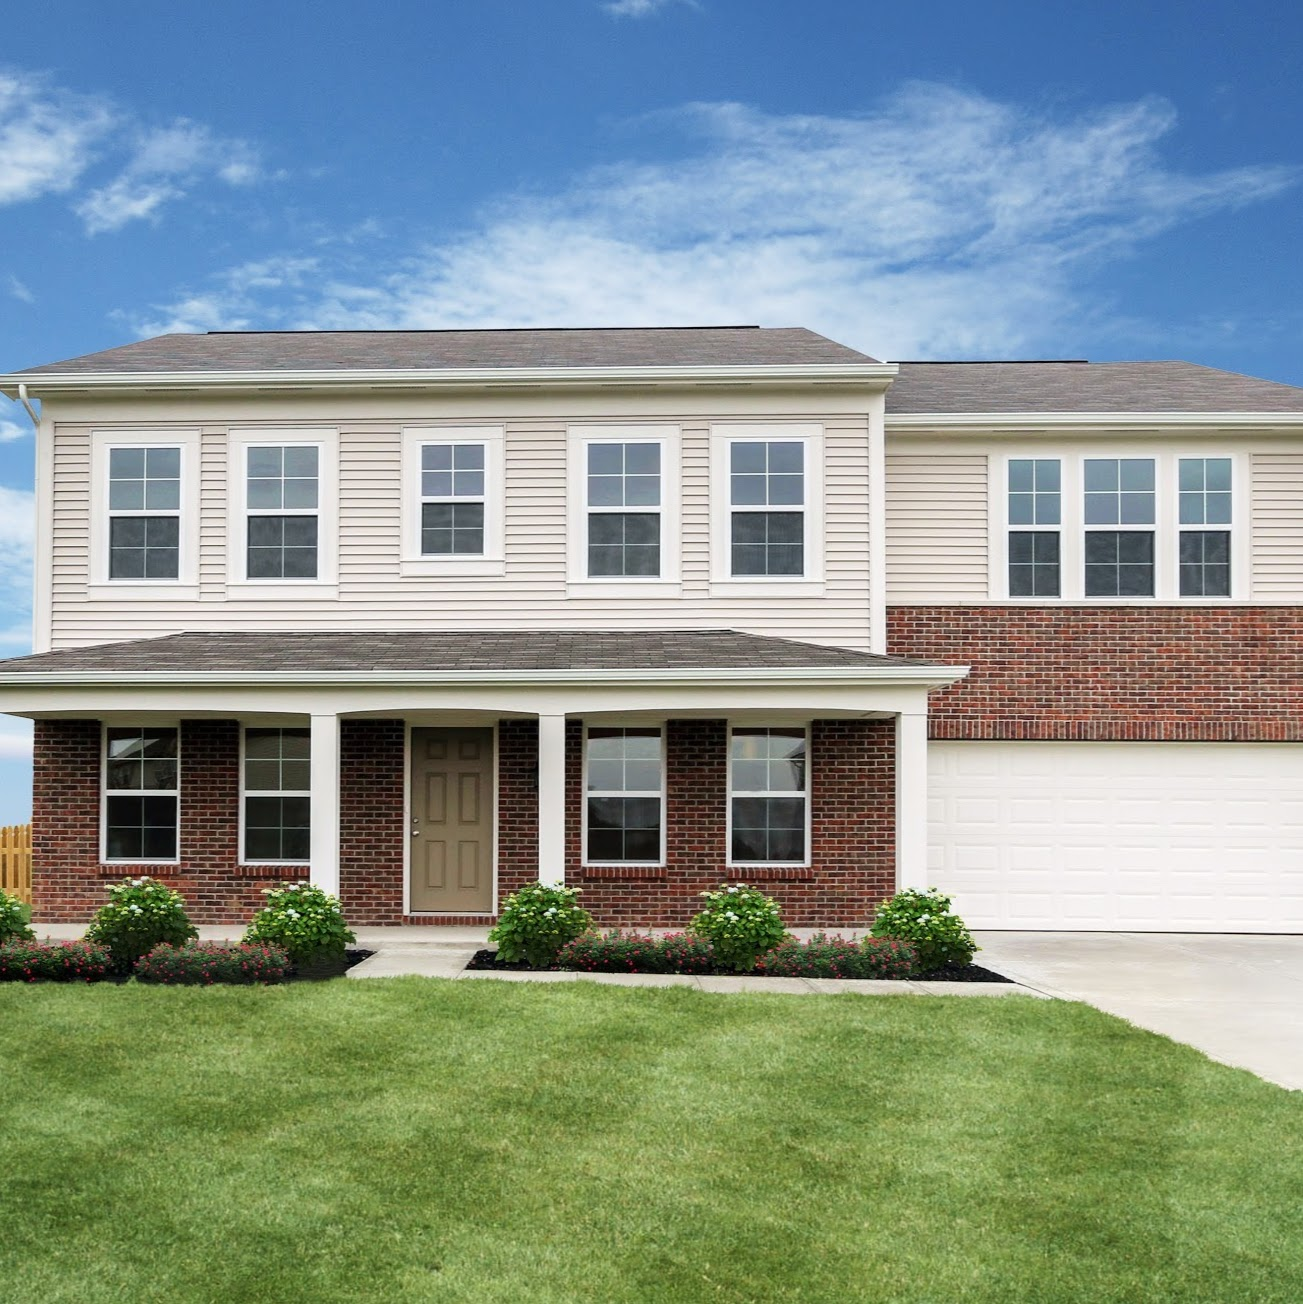 Ravines of the Olentangy by Fischer Homes - Delaware, OH 43015 - (614)610-4201 | ShowMeLocal.com